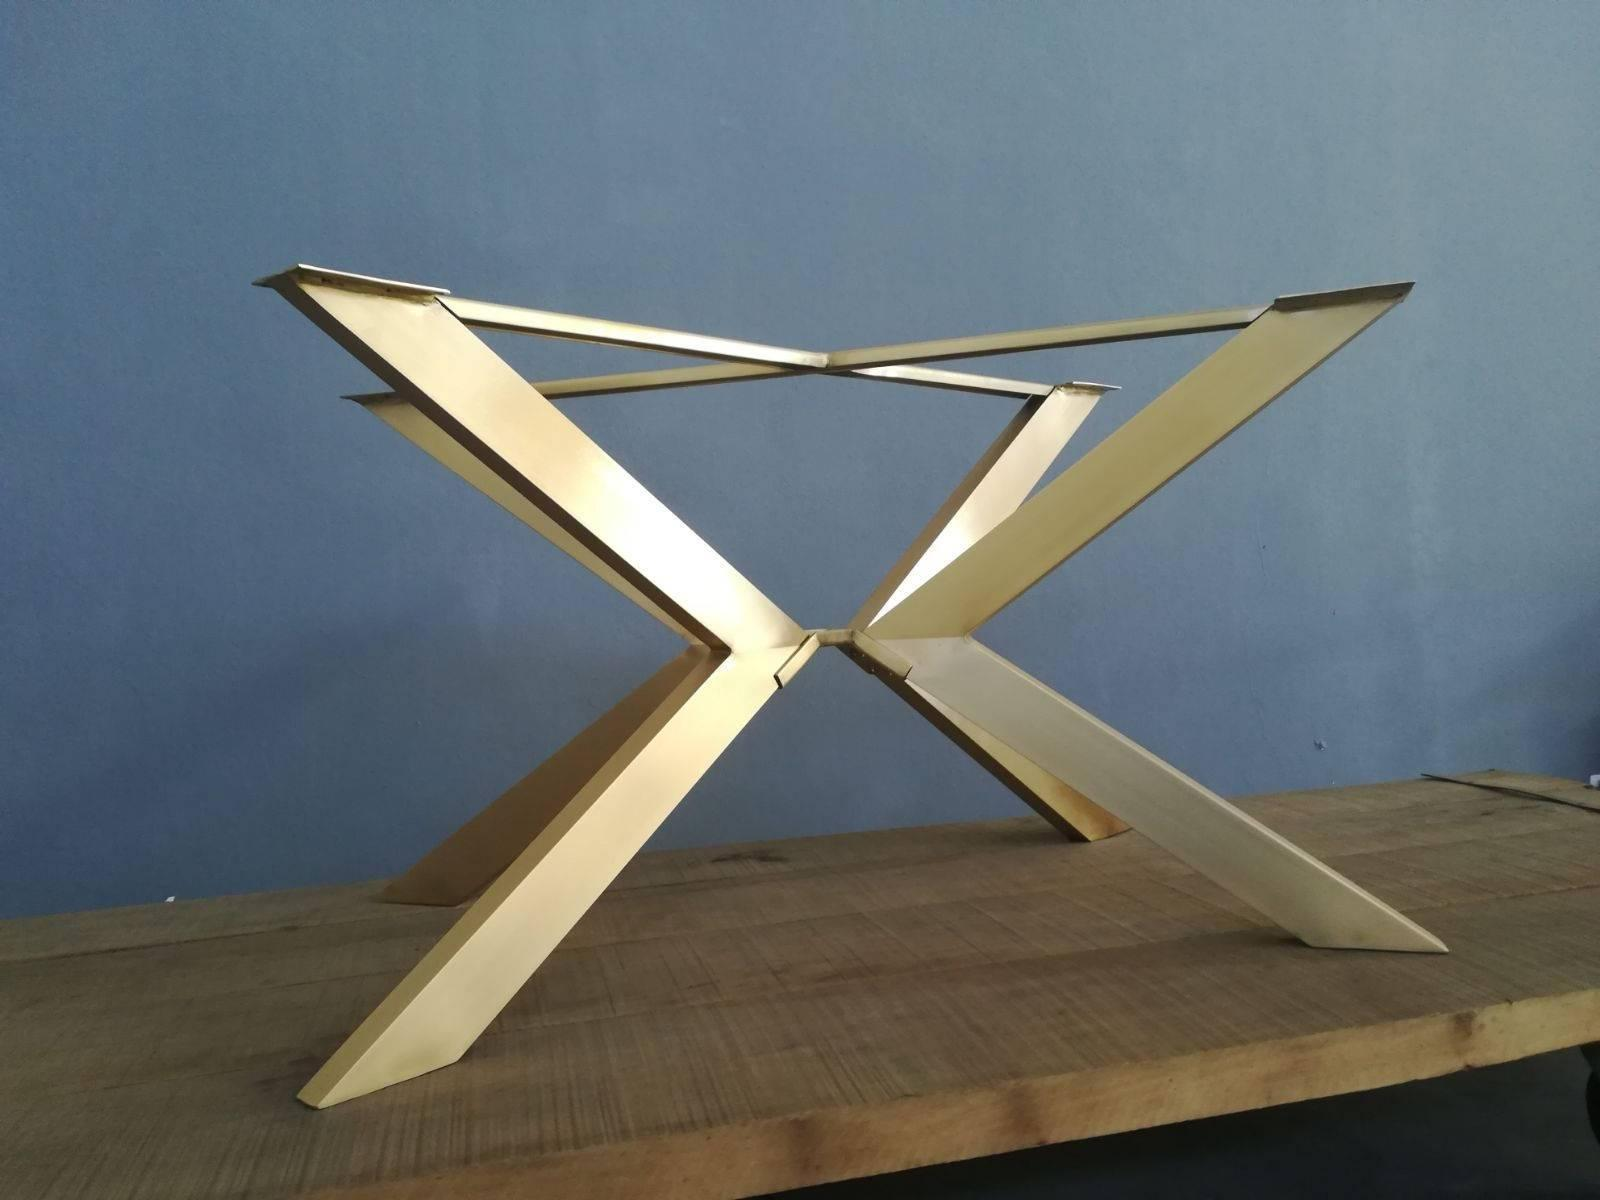 Pleasant 28 H 24 W X 46 L Tug Brass Modern Table Base Home Interior And Landscaping Ponolsignezvosmurscom